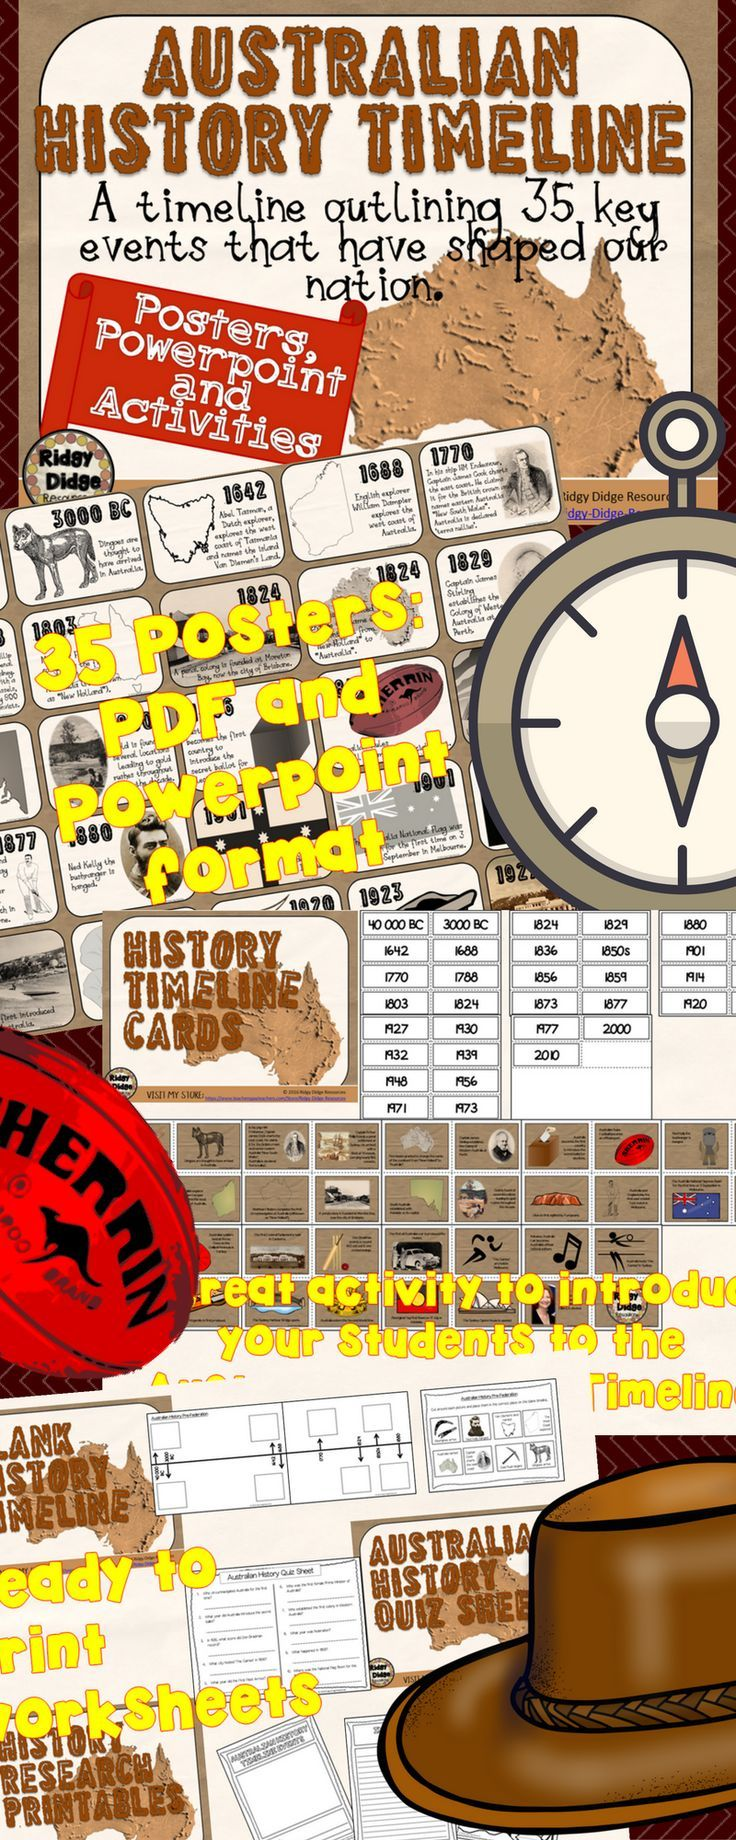 Australian History Timeline and Activity Bundle - 35 Posters, Powerpoint and Printable Activities #australianhistory #australiancurriculum #timeline